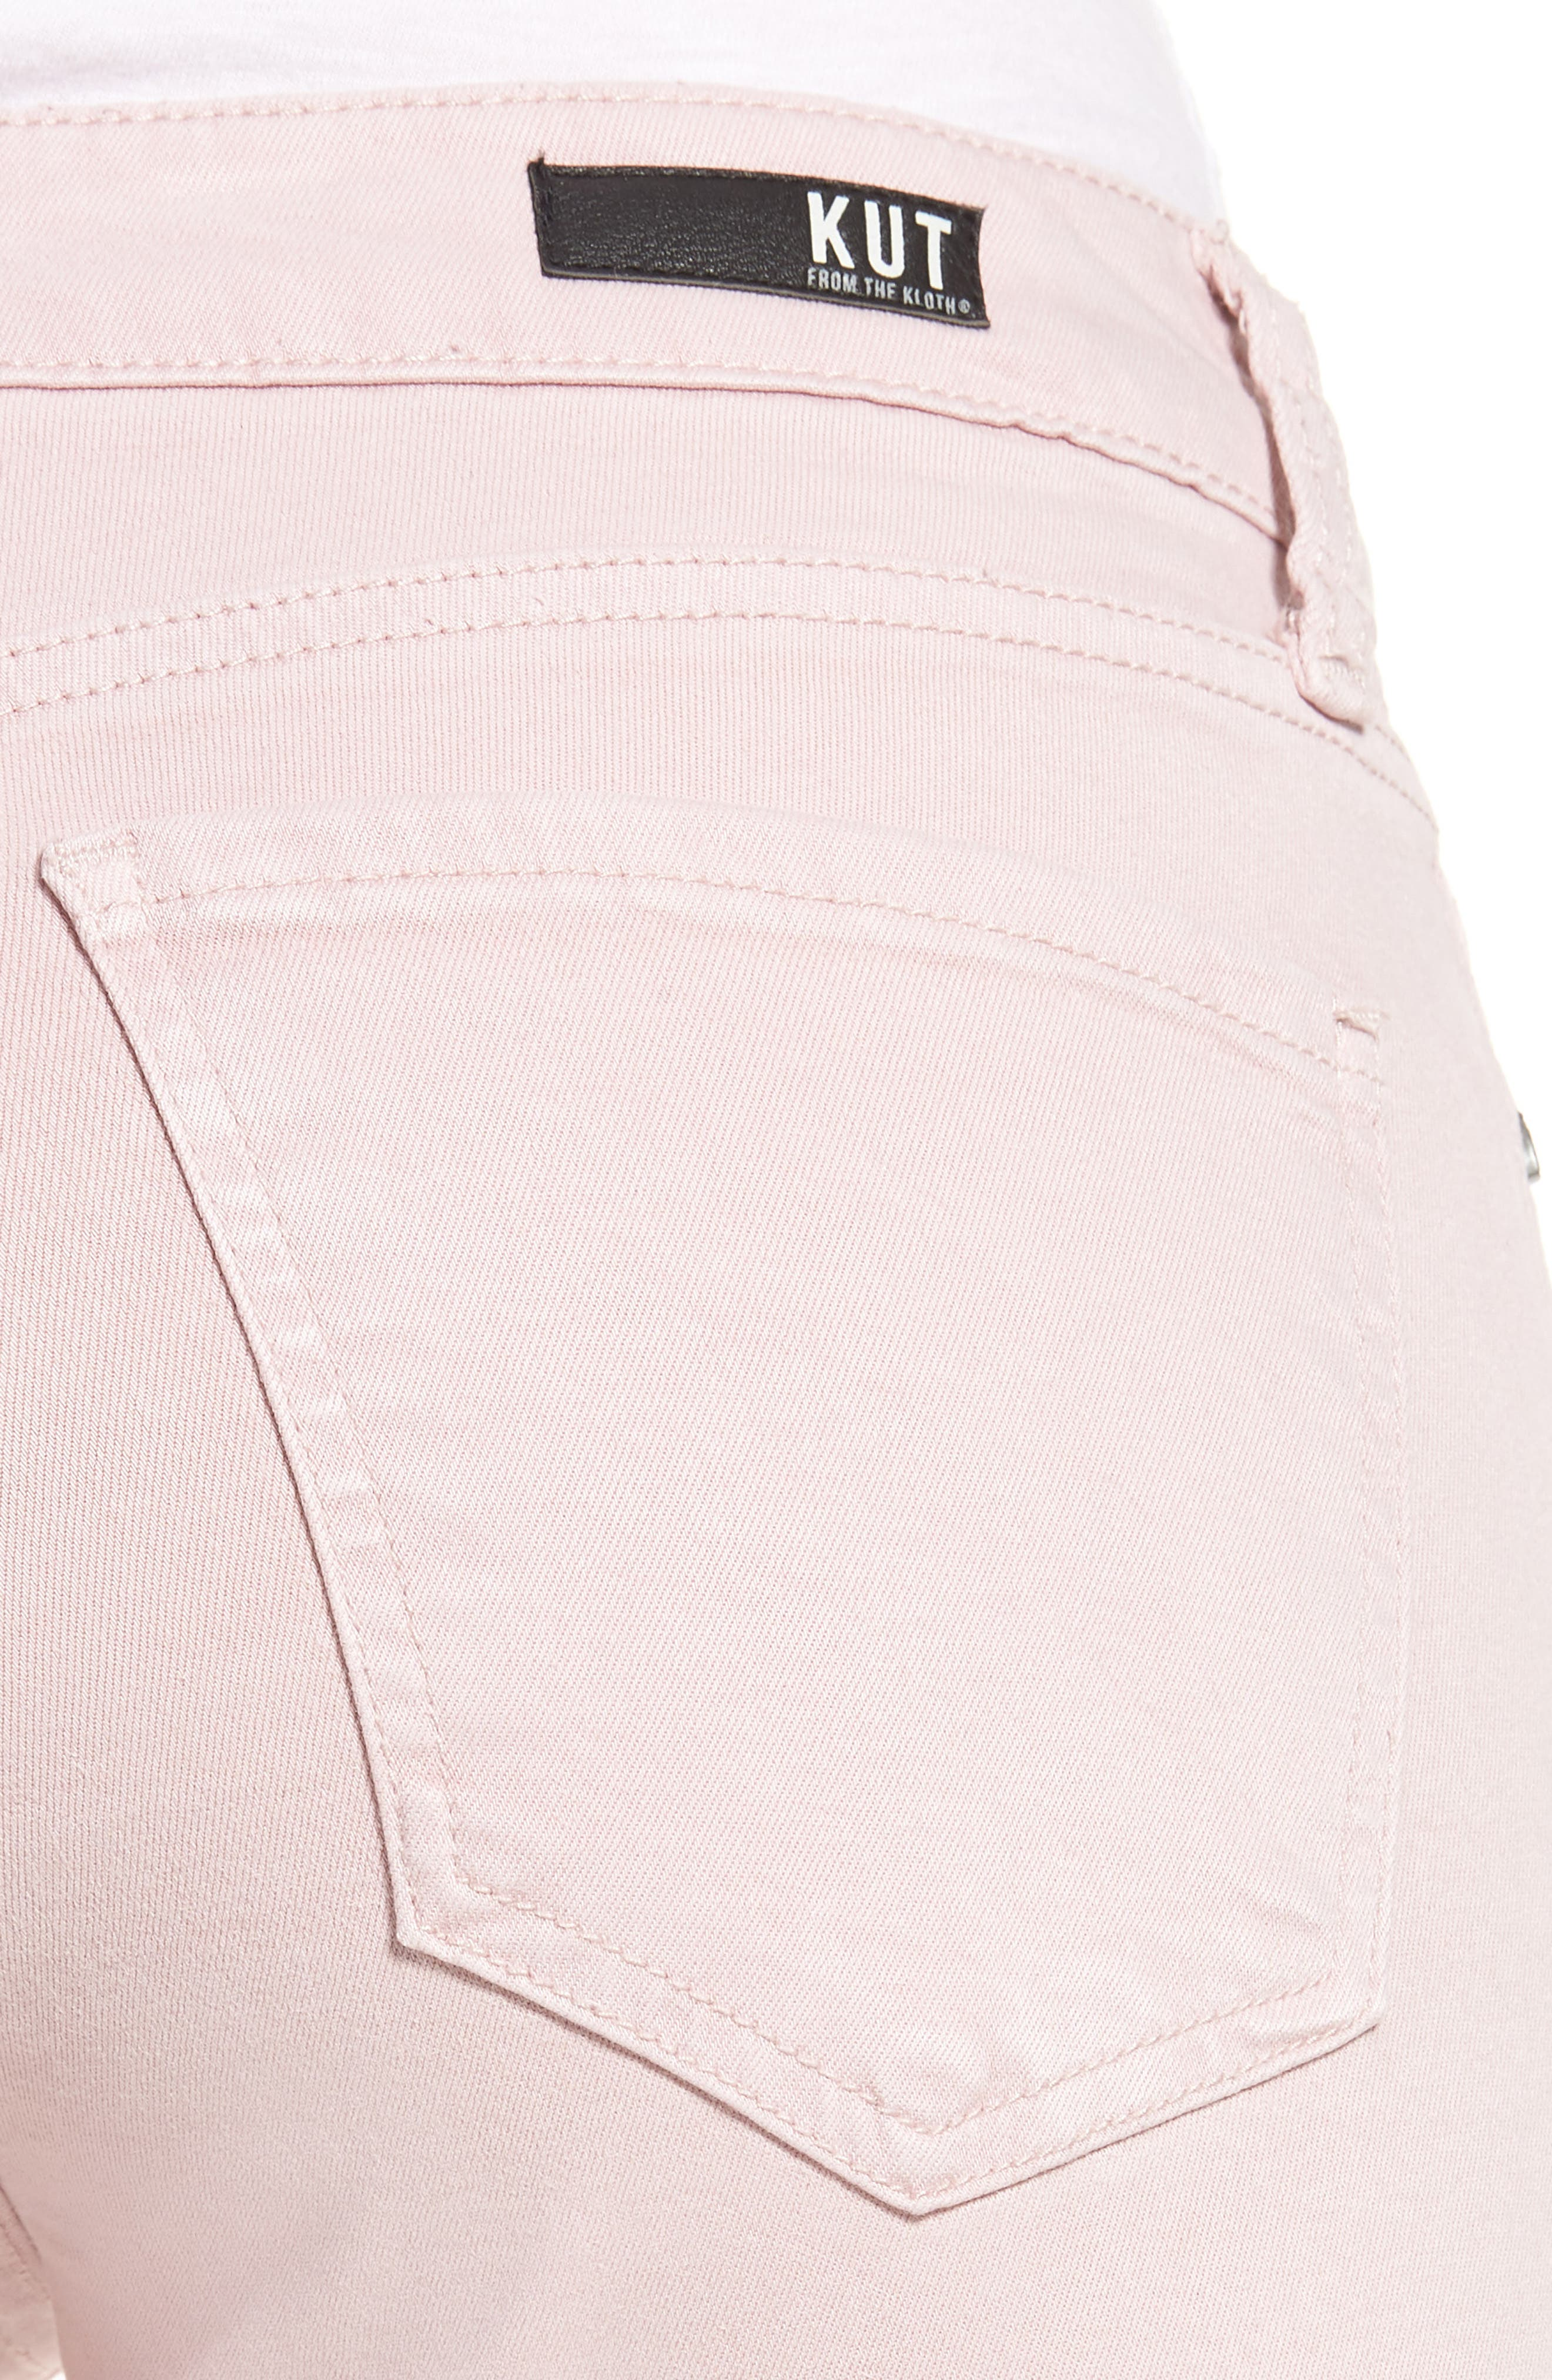 KUT from the Kloth Amy Crop Skinny Jeans,                             Alternate thumbnail 4, color,                             Rose